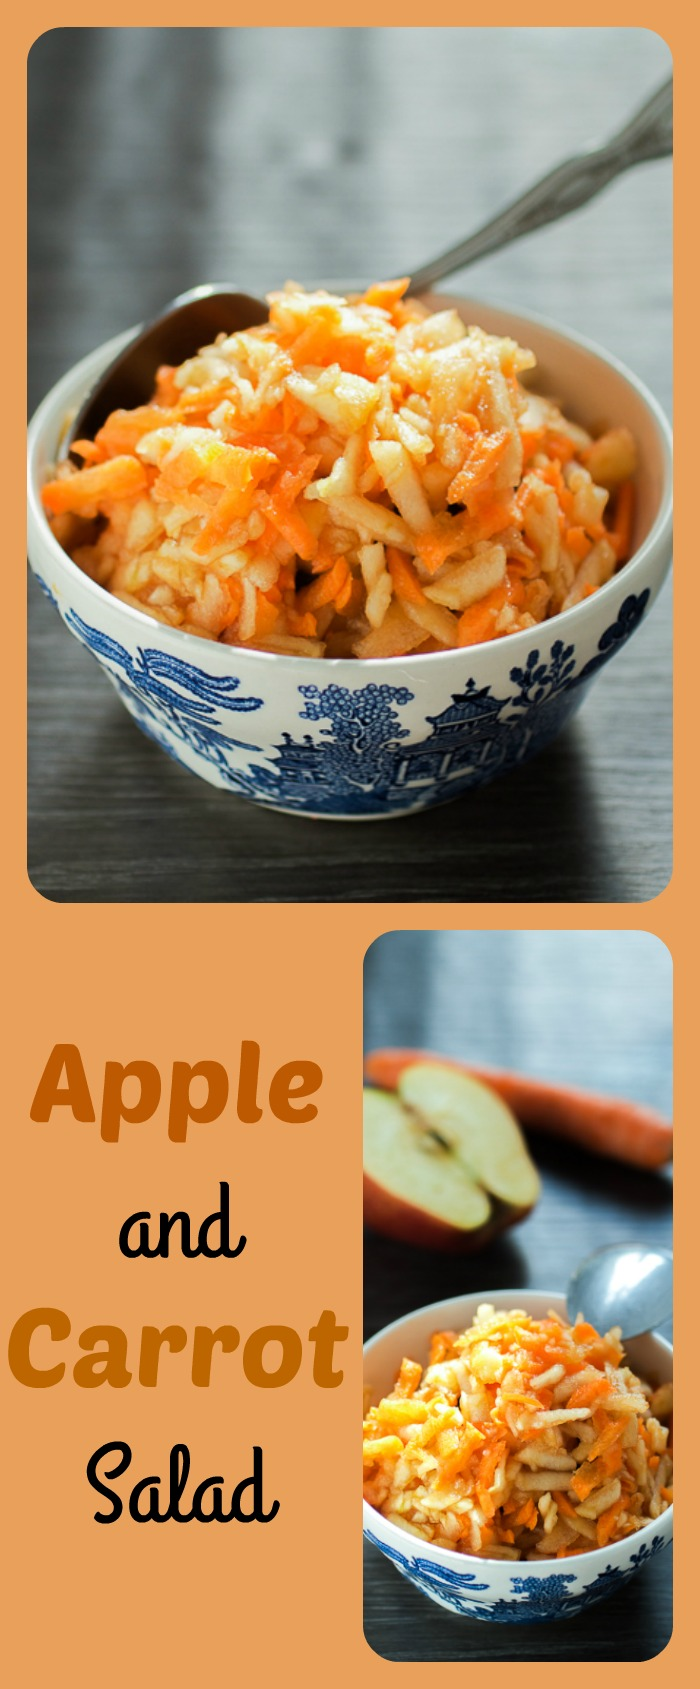 """Apple and carrot salad is more a dessert and less a salad. This simple 1:1 carrot to apple (grated) equation is the healthiest, but most appeasing answer to the quintessential question """"Is there anything sweet to eat in this house?"""""""